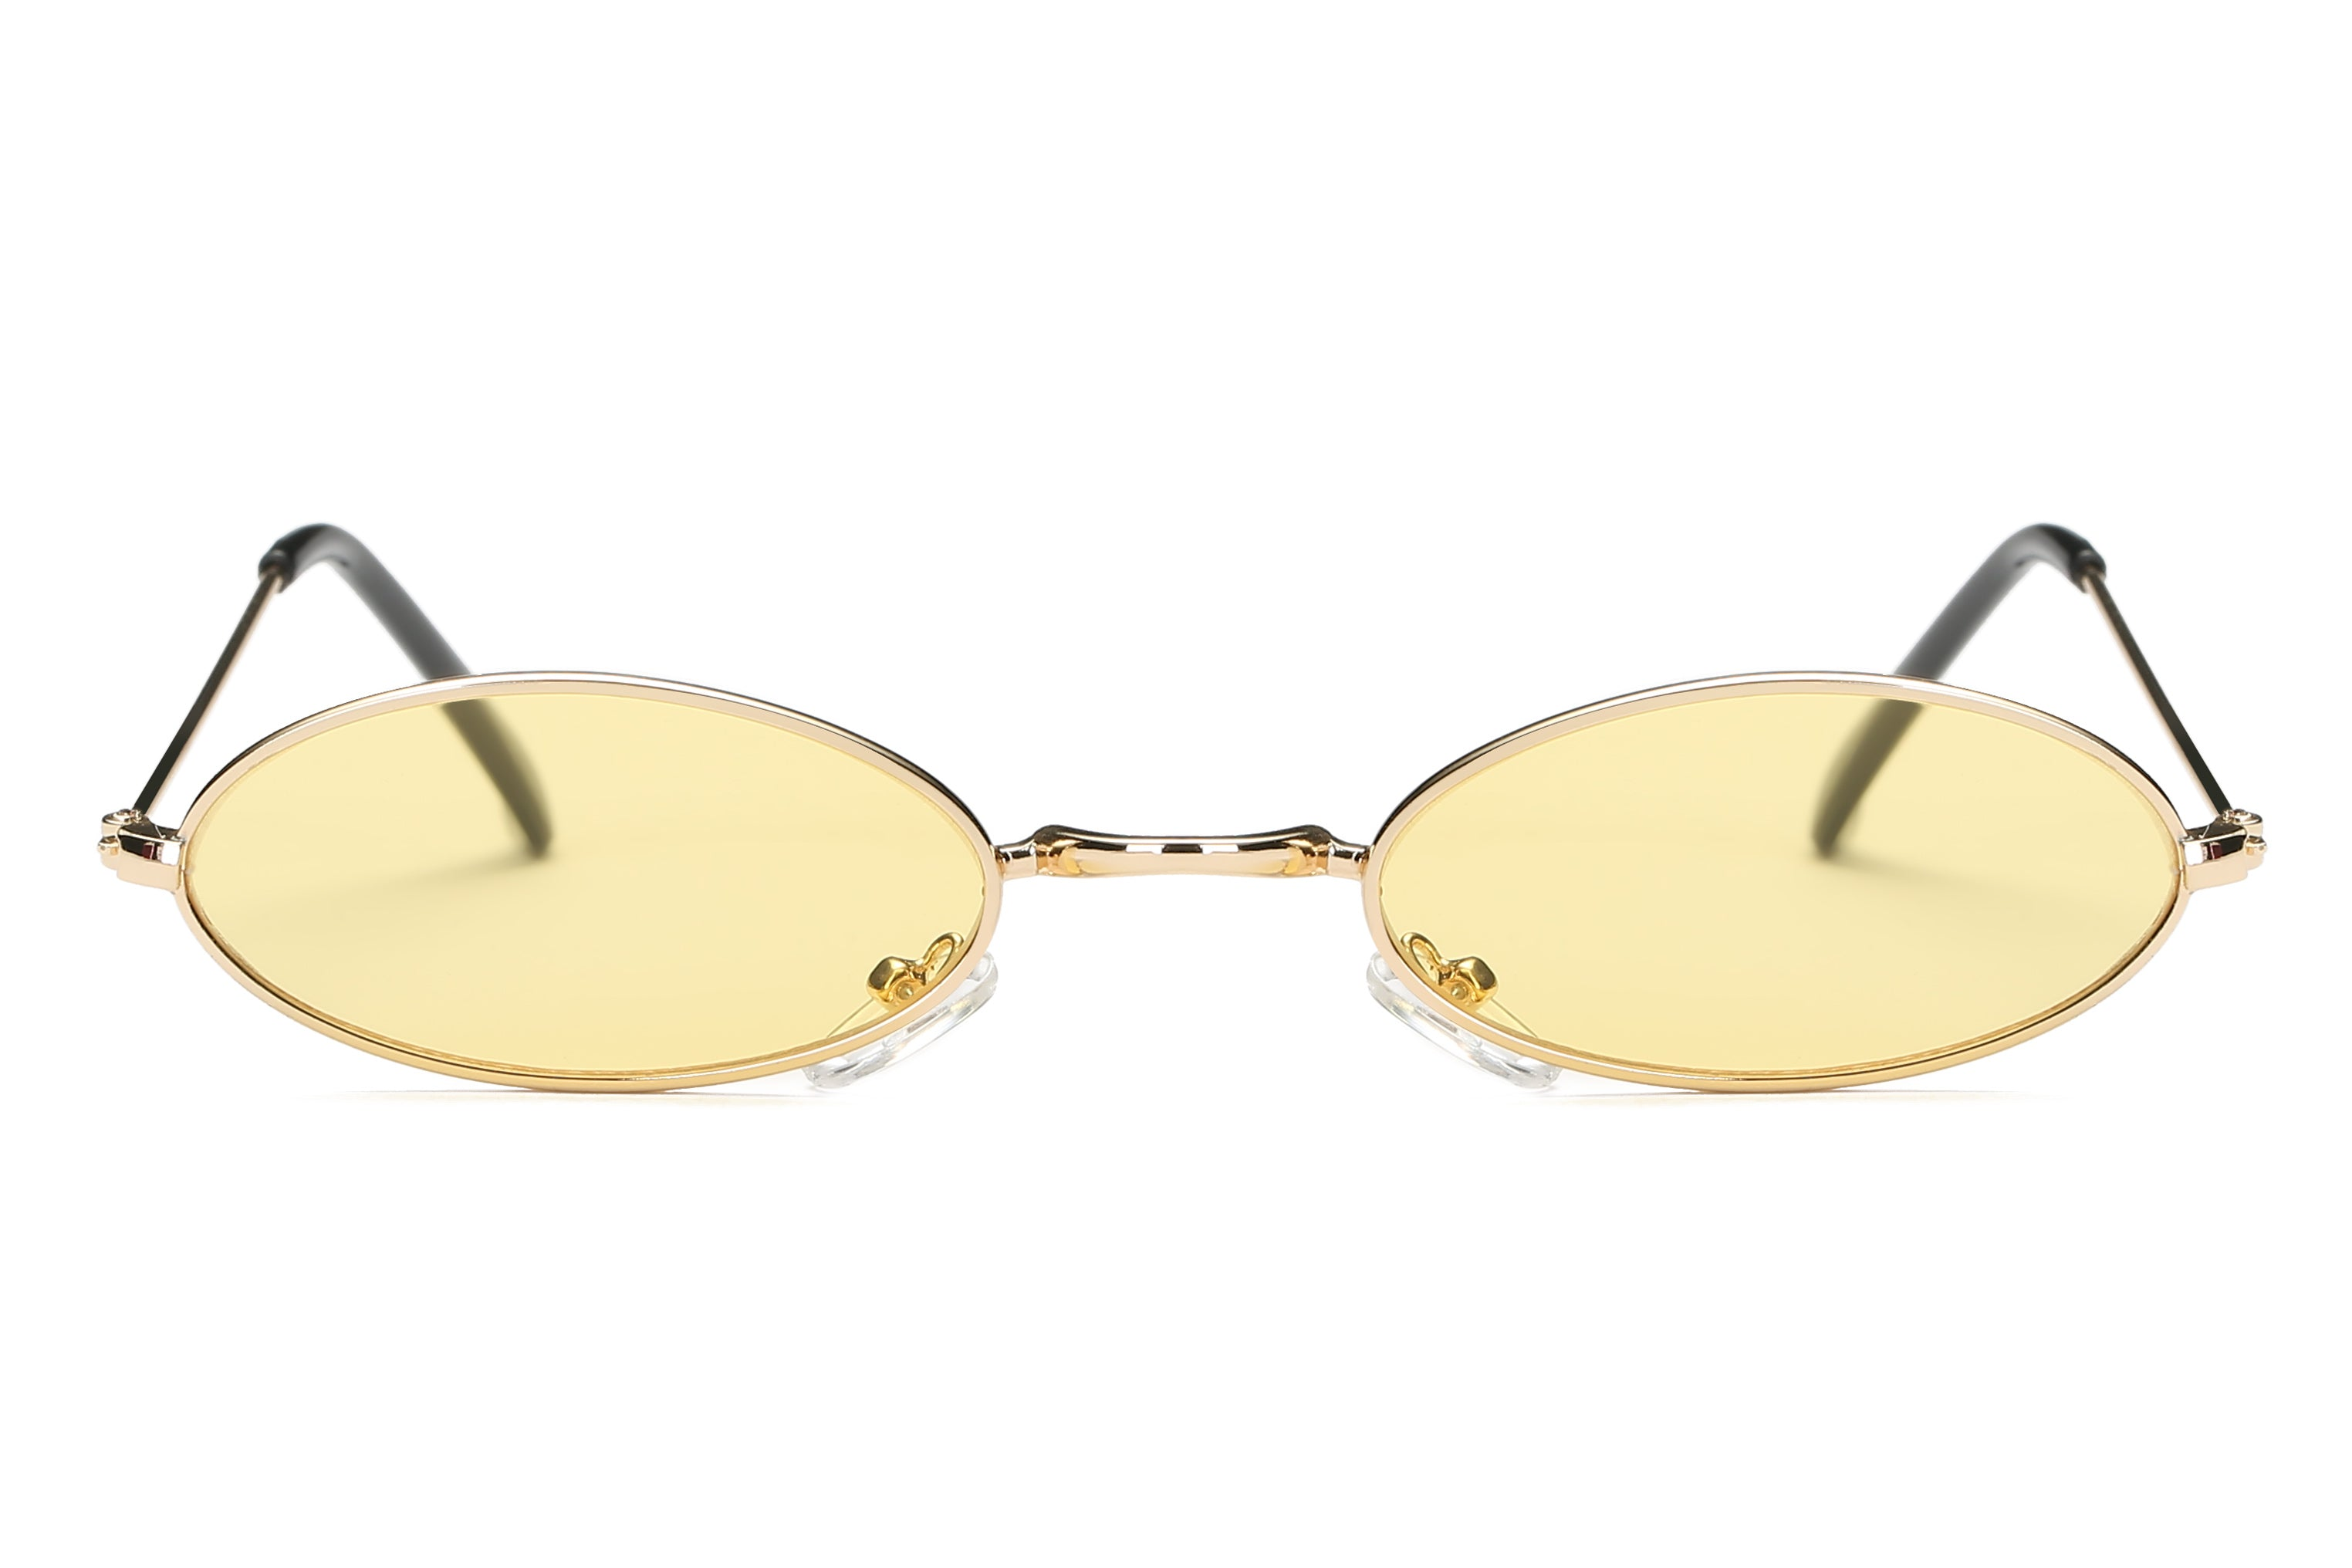 Retro Vintage Small Round Sunglasses for Men and Women - Yellow